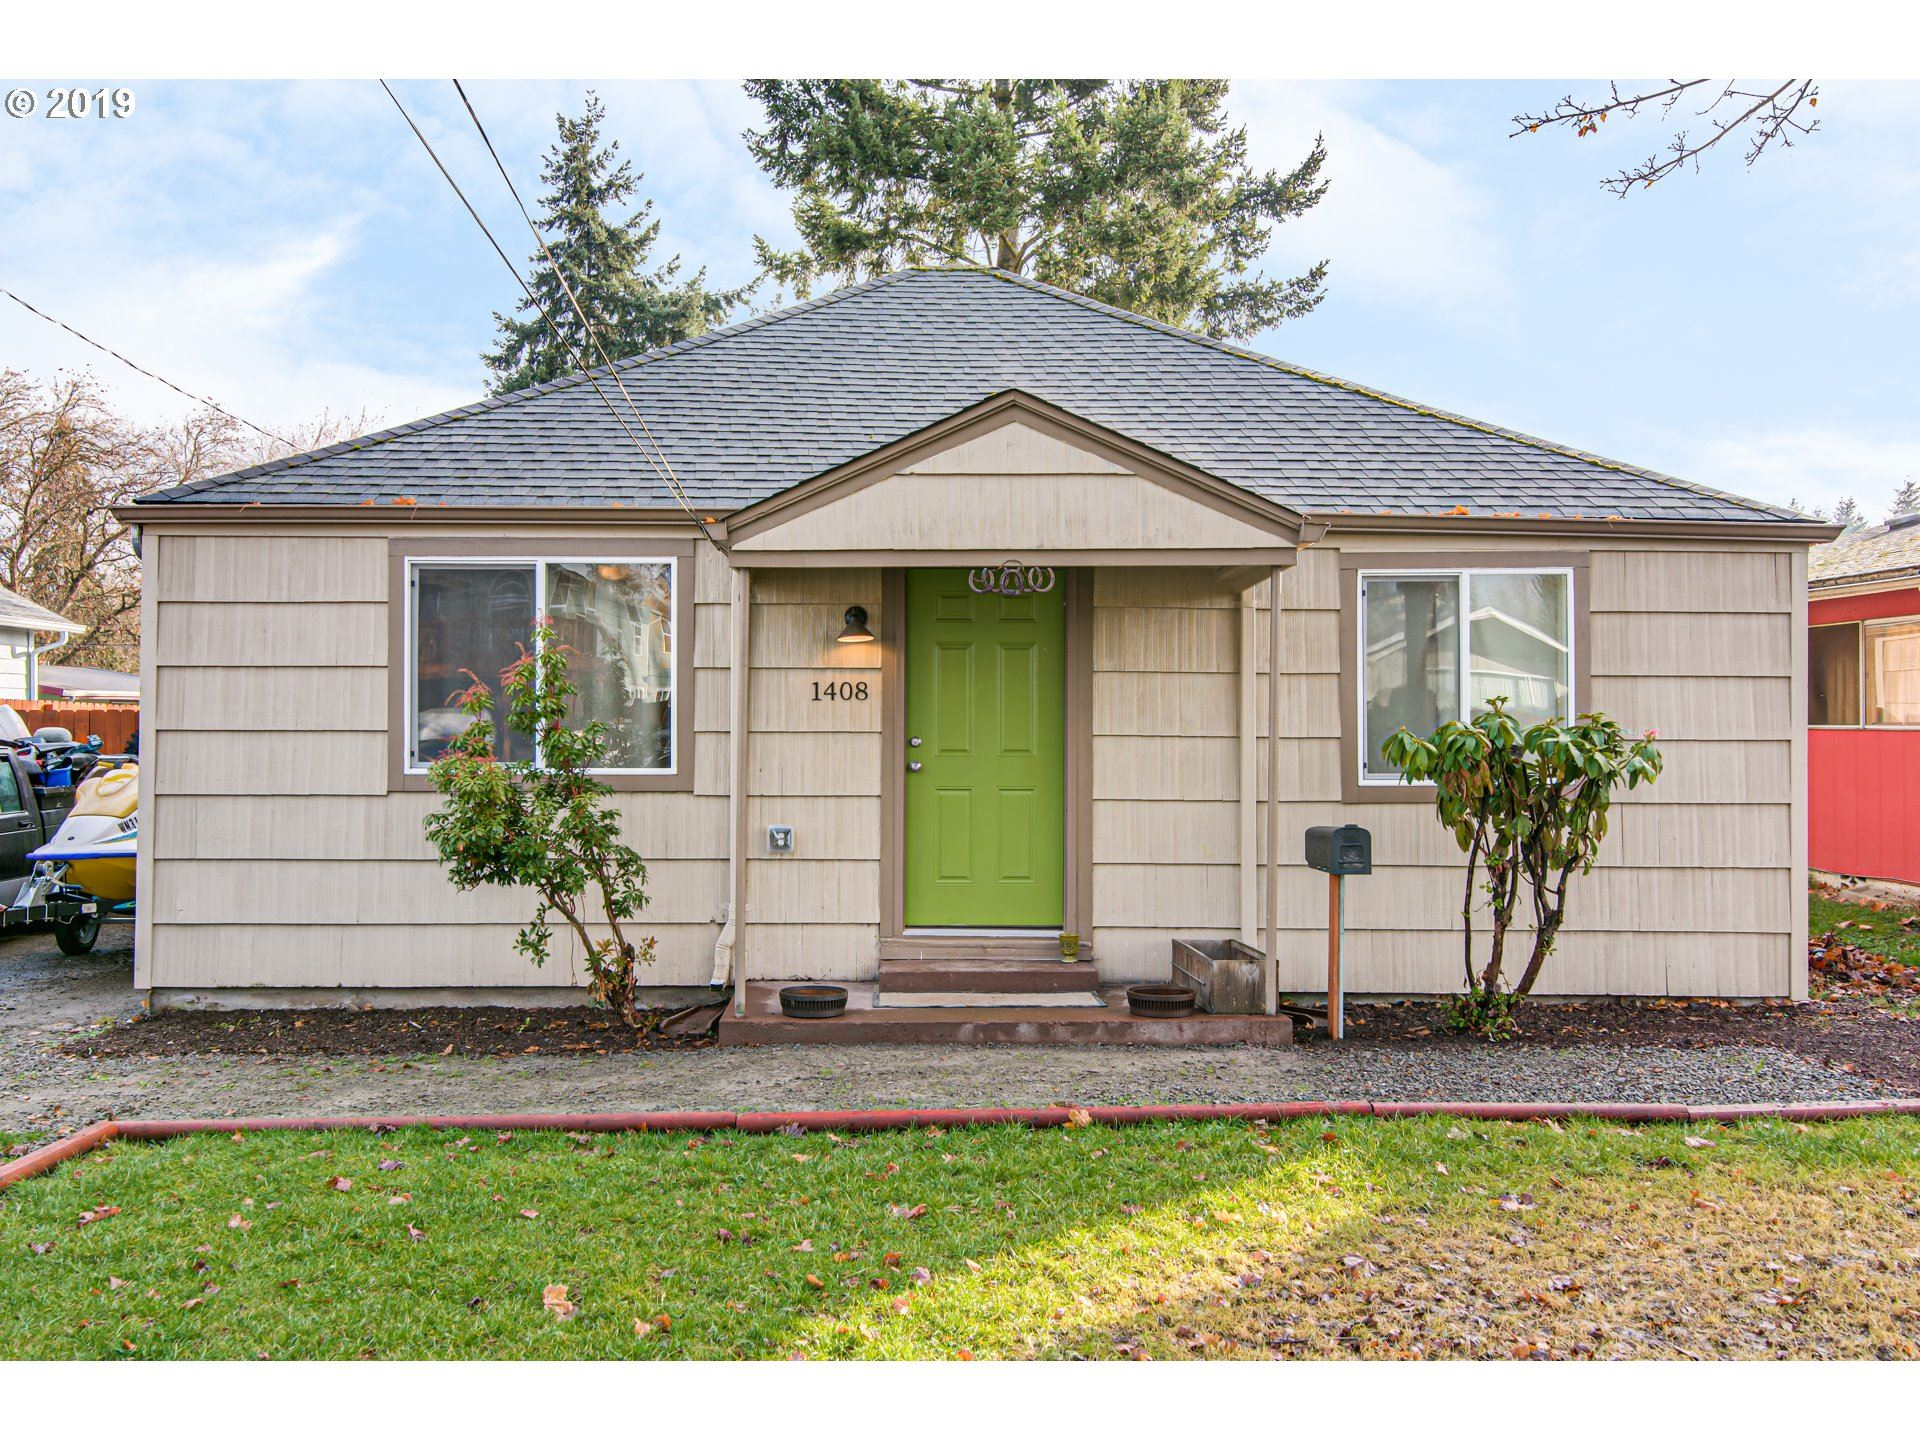 1408 S 8TH AVE, Kelso, WA 98626 - MLS#: 19469465